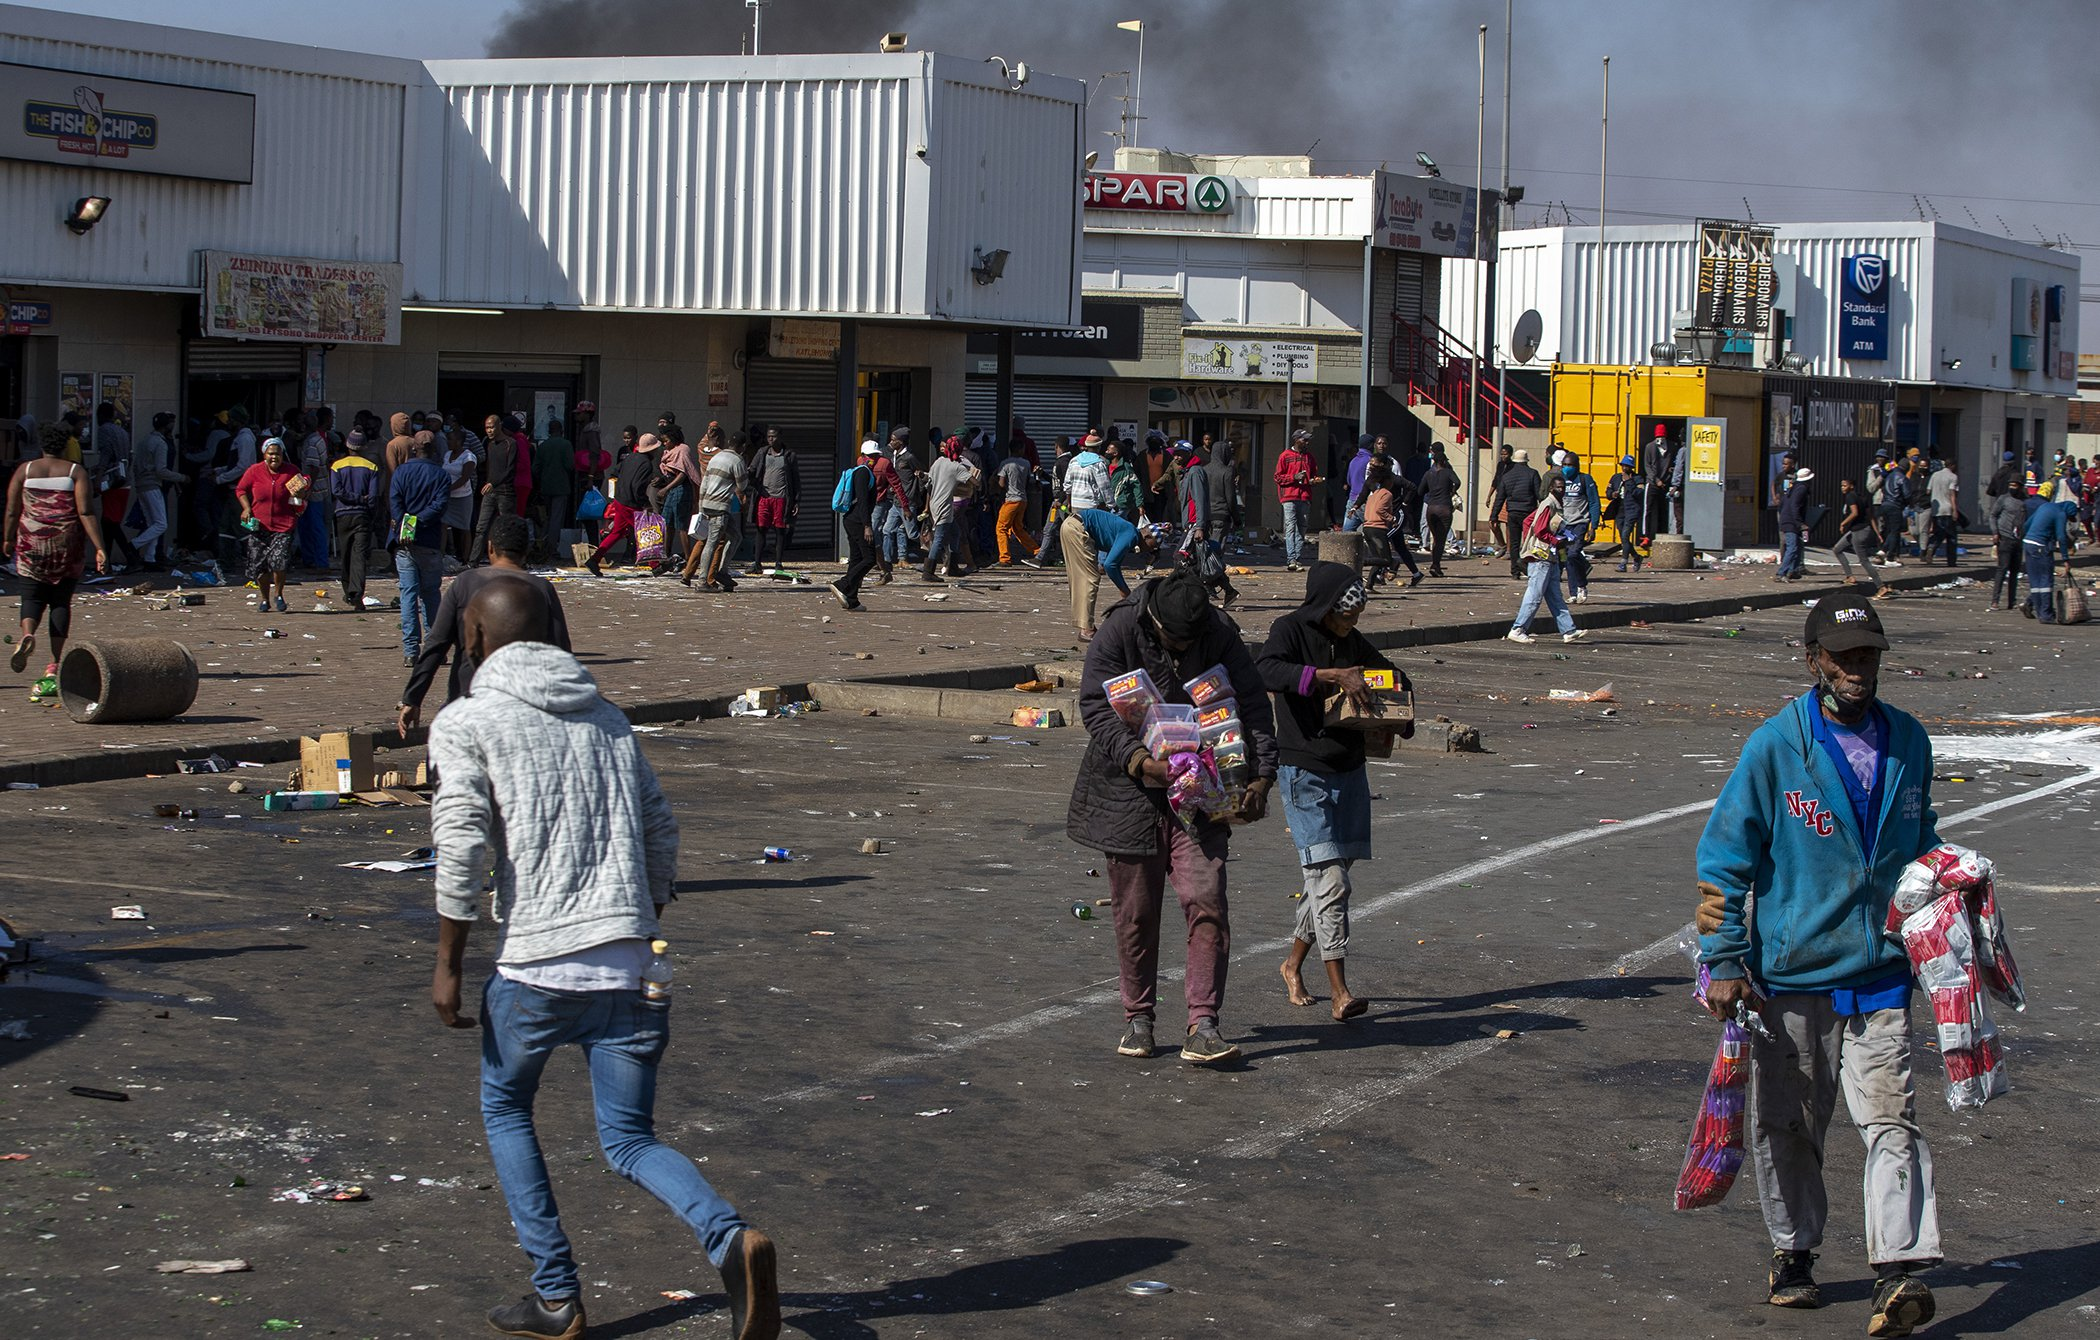 South-Africa-Political-Social-Unrest-Riots-002.jpg